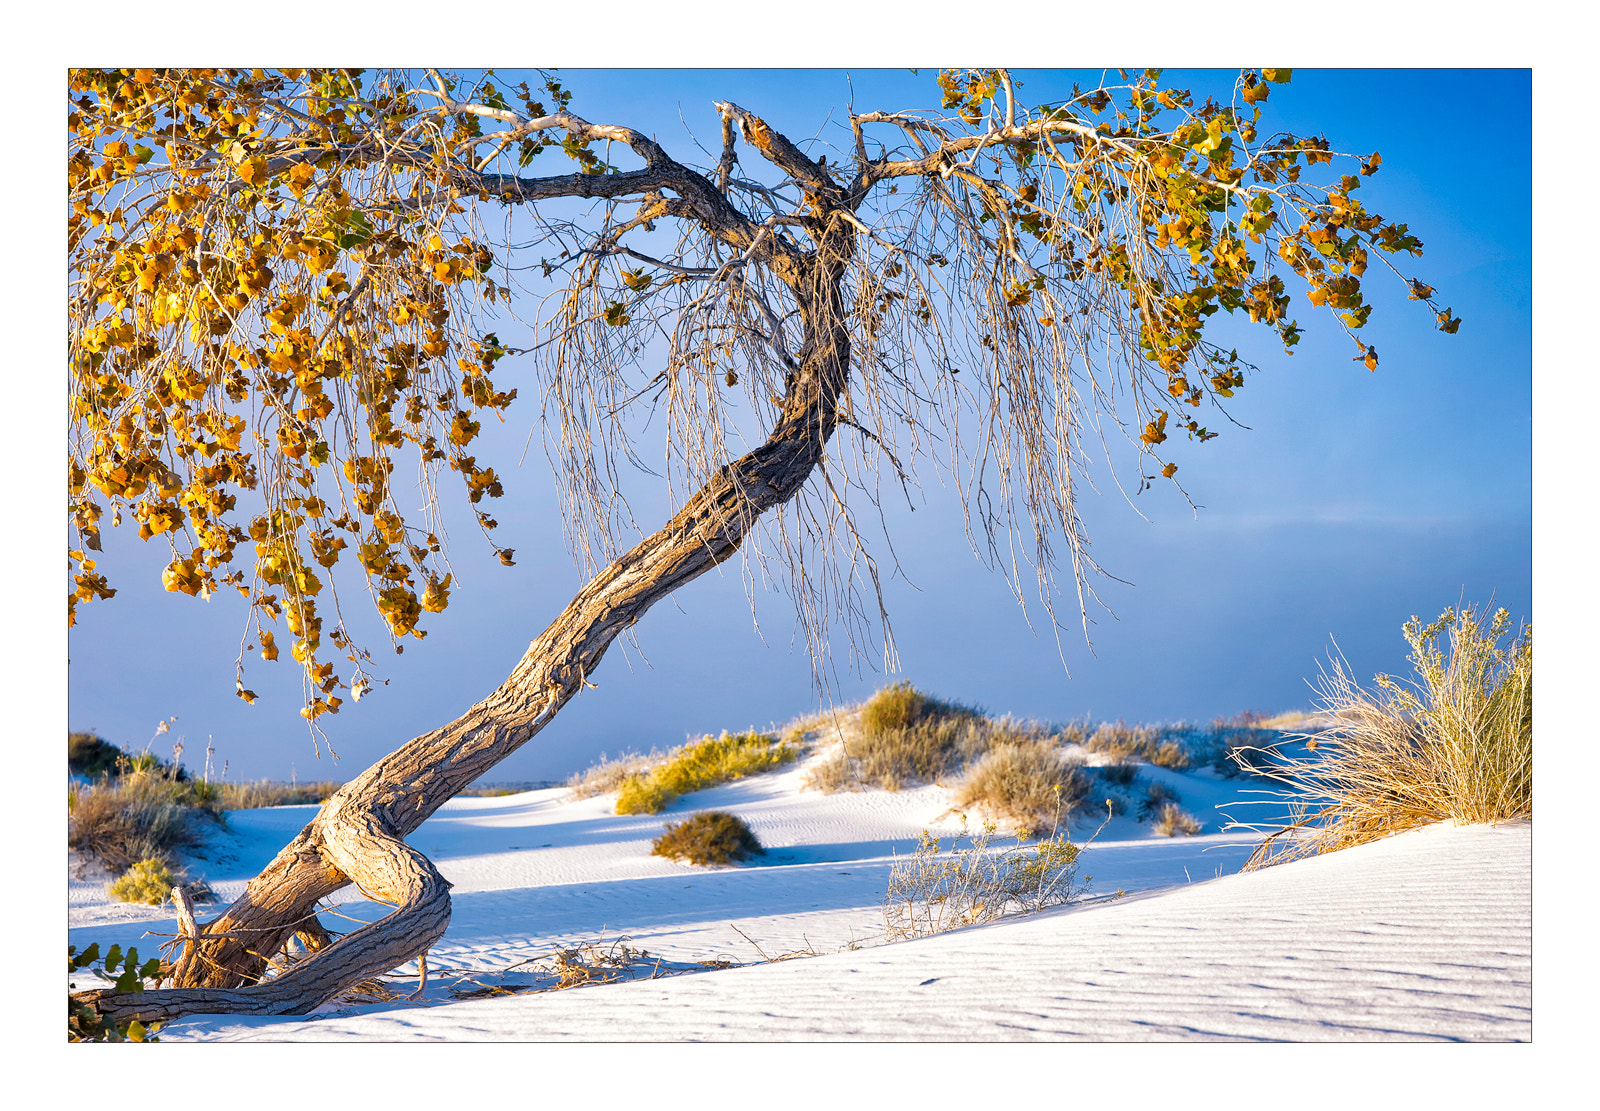 Photograph white sands national monument by bugeyed G on 500px